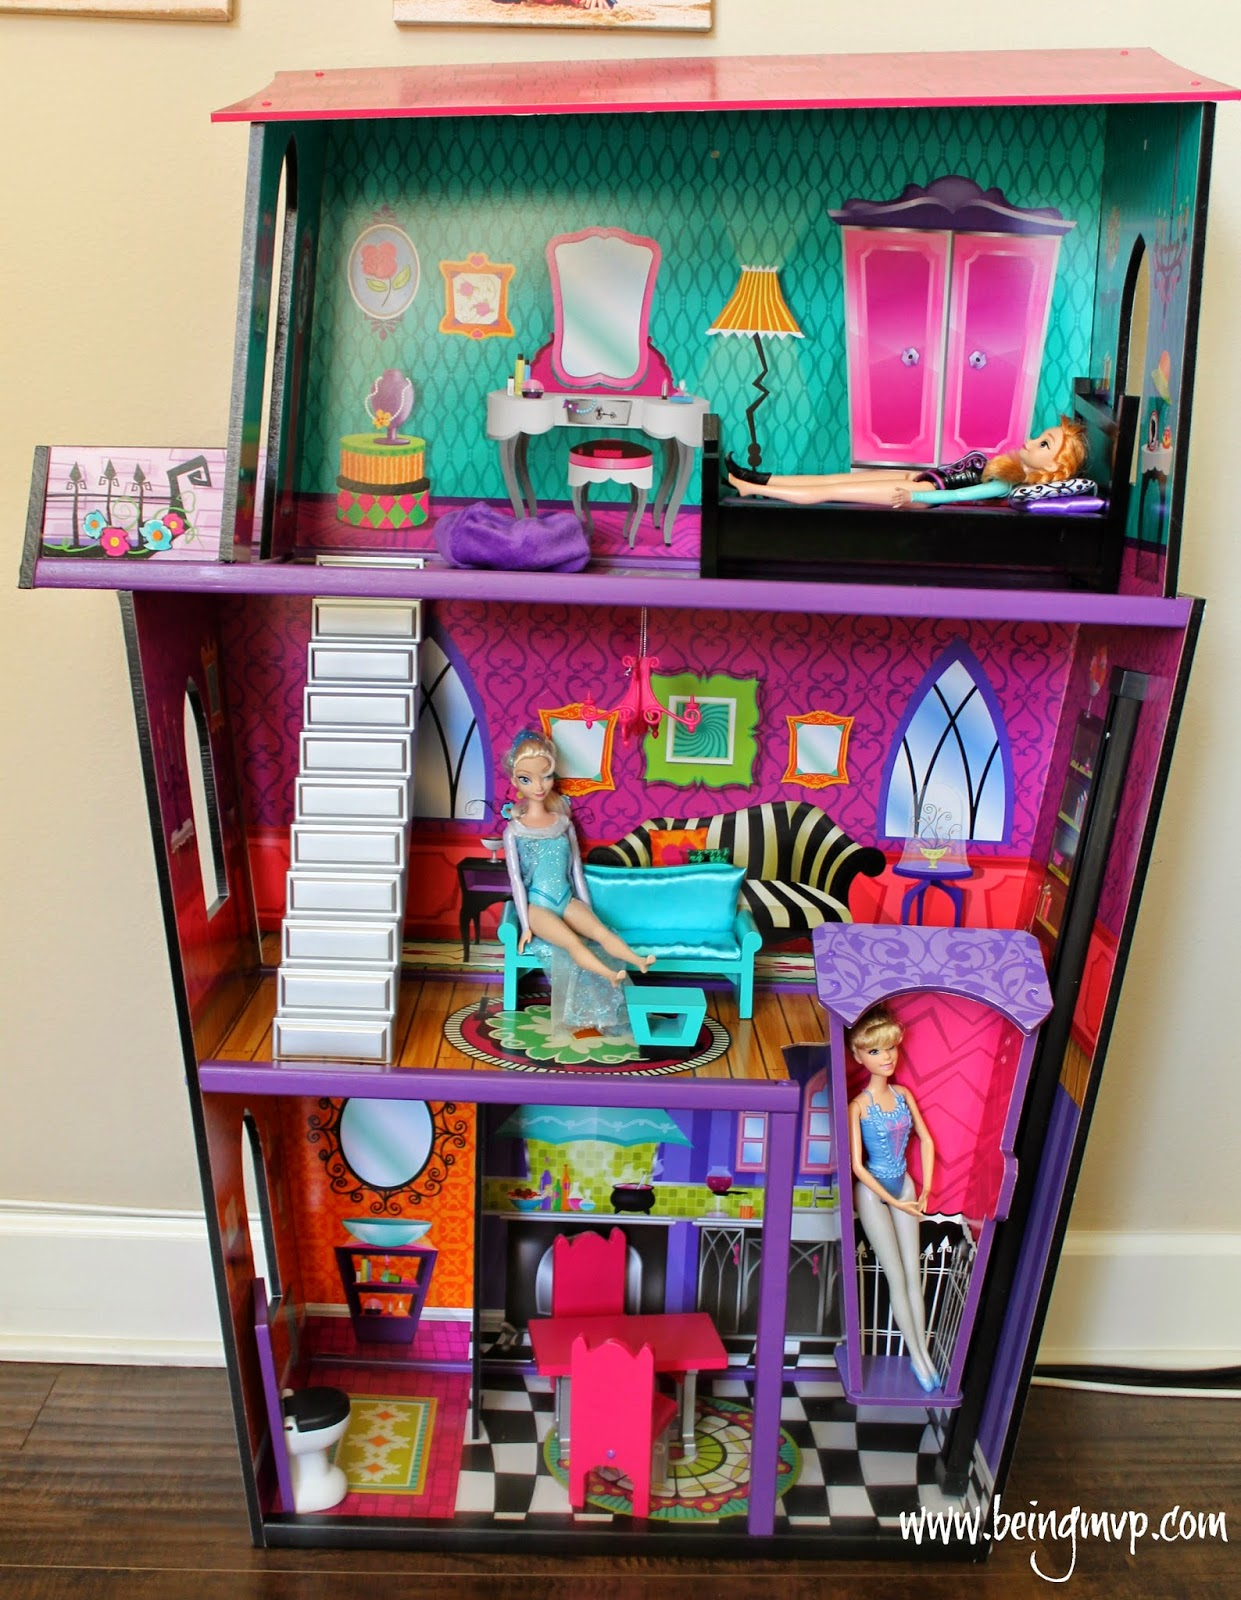 wonderful kidkraft dollhouse in colorful design with triple tier design and barbie inside for nursery decor ideas